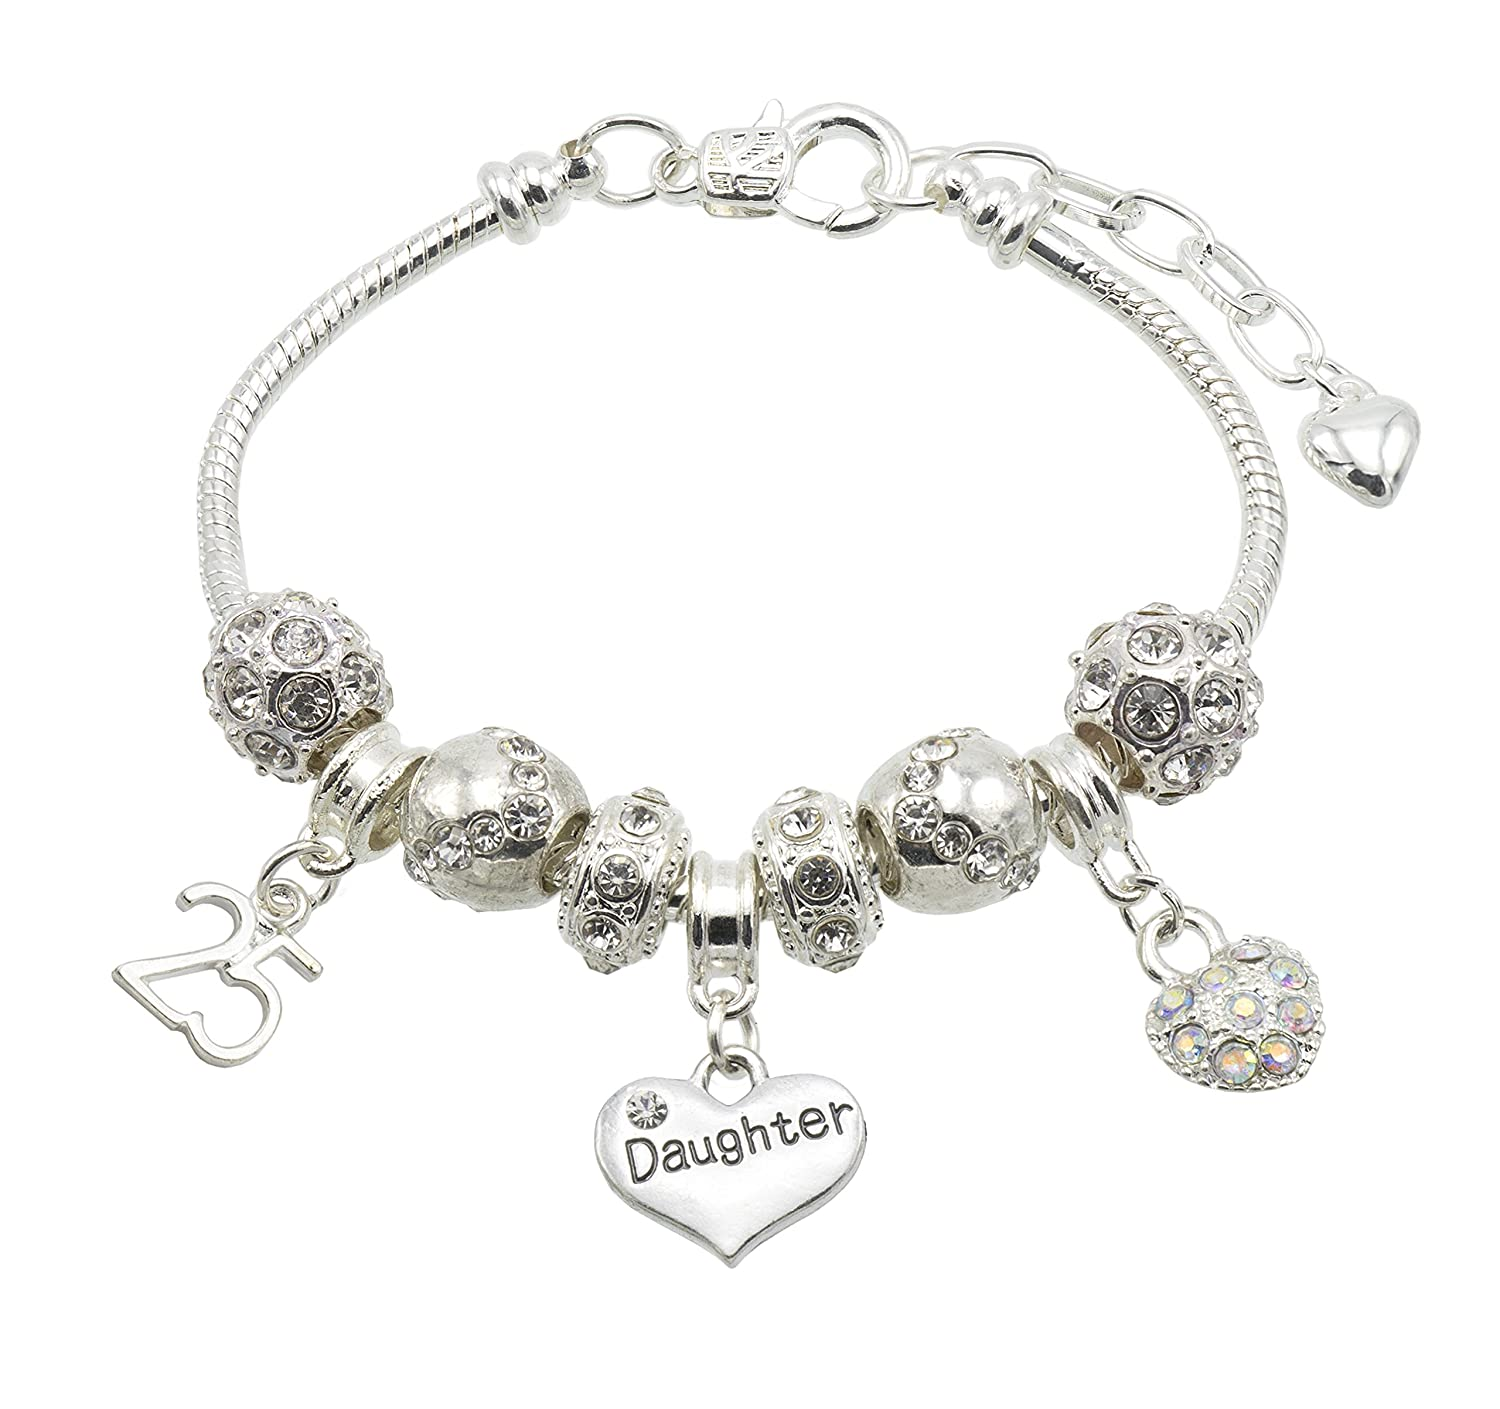 Jewellery Hut Daughter Birthday Charm Bracelet with Gift Box - Ages Available 13, 15, 16, 18, 20, 21, 25, 30, 35, 40, 45 & 50 45 & 50 (13th) BR#cmk001Daughter-13th